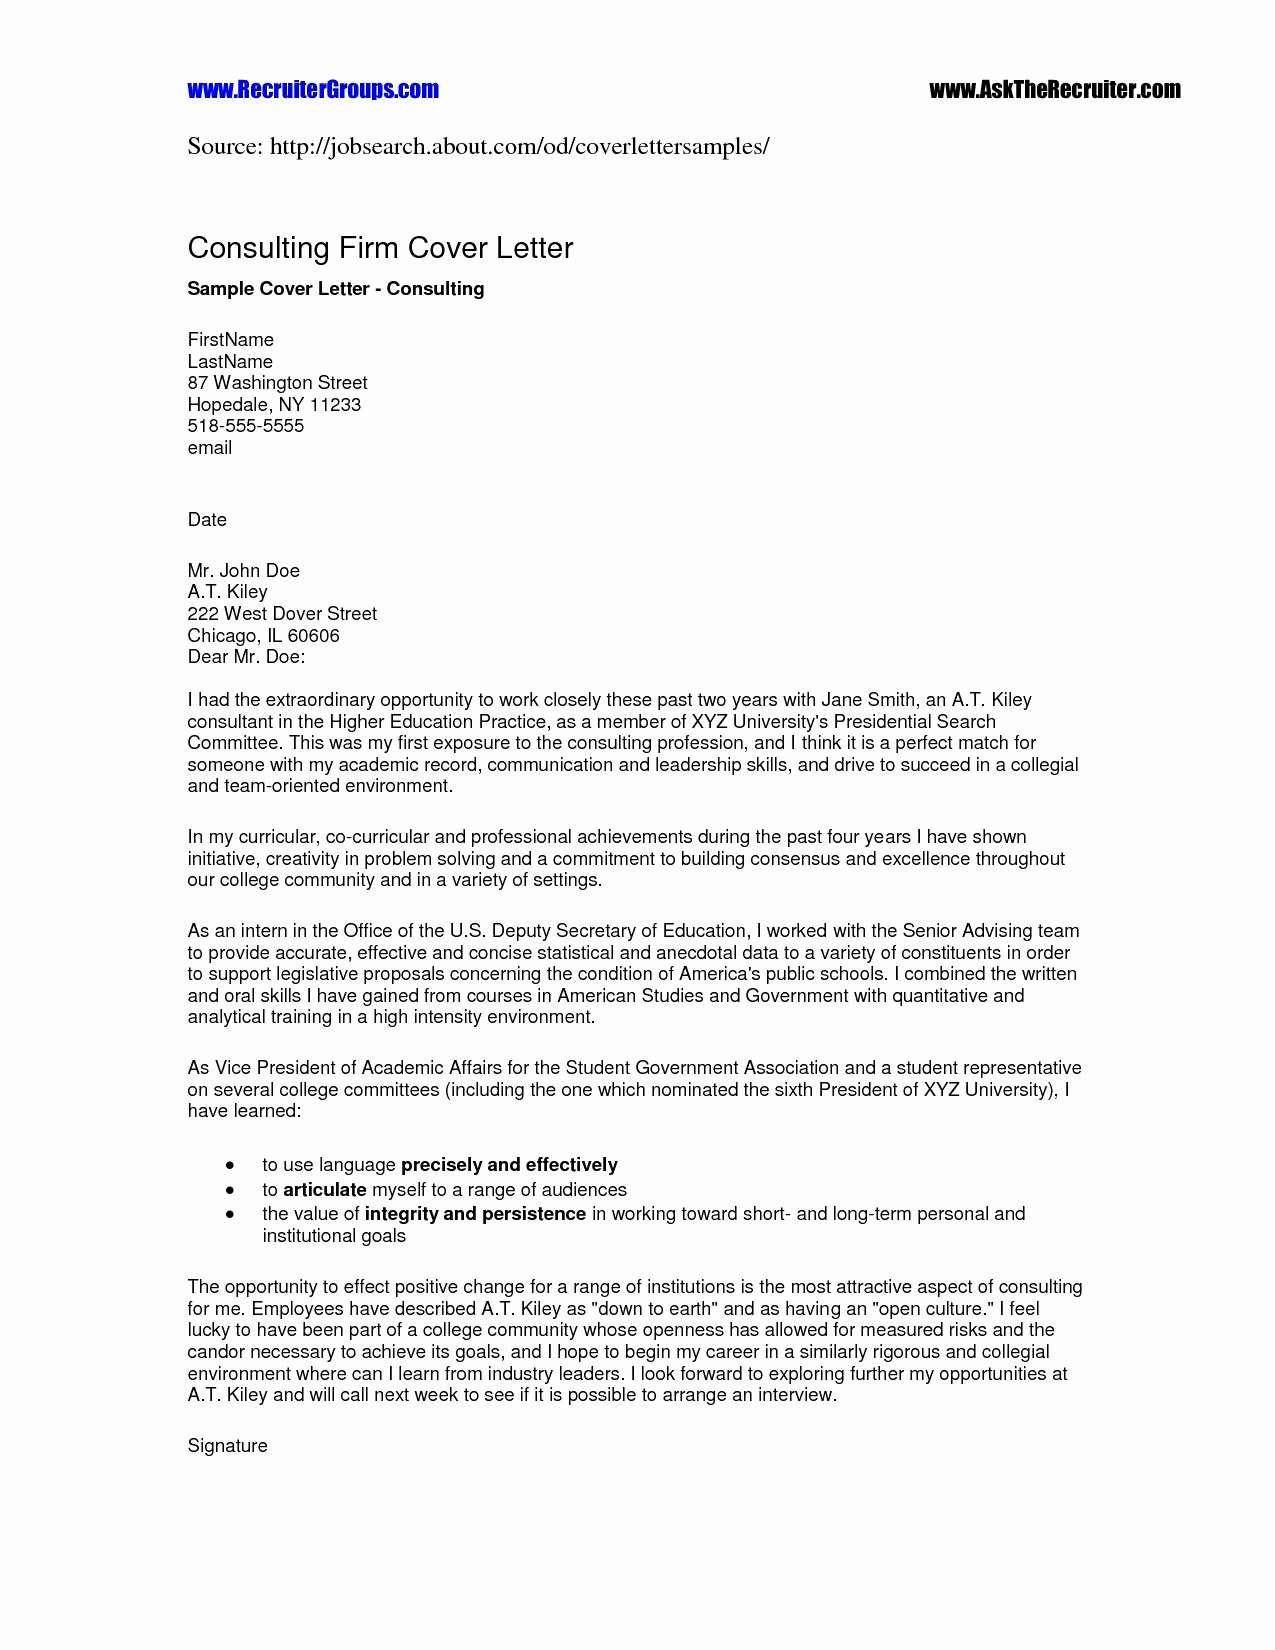 Modern Resume and Cover Letter Template - Teacher Resume Templates Microsoft Word 2007 Fresh Modern Resume